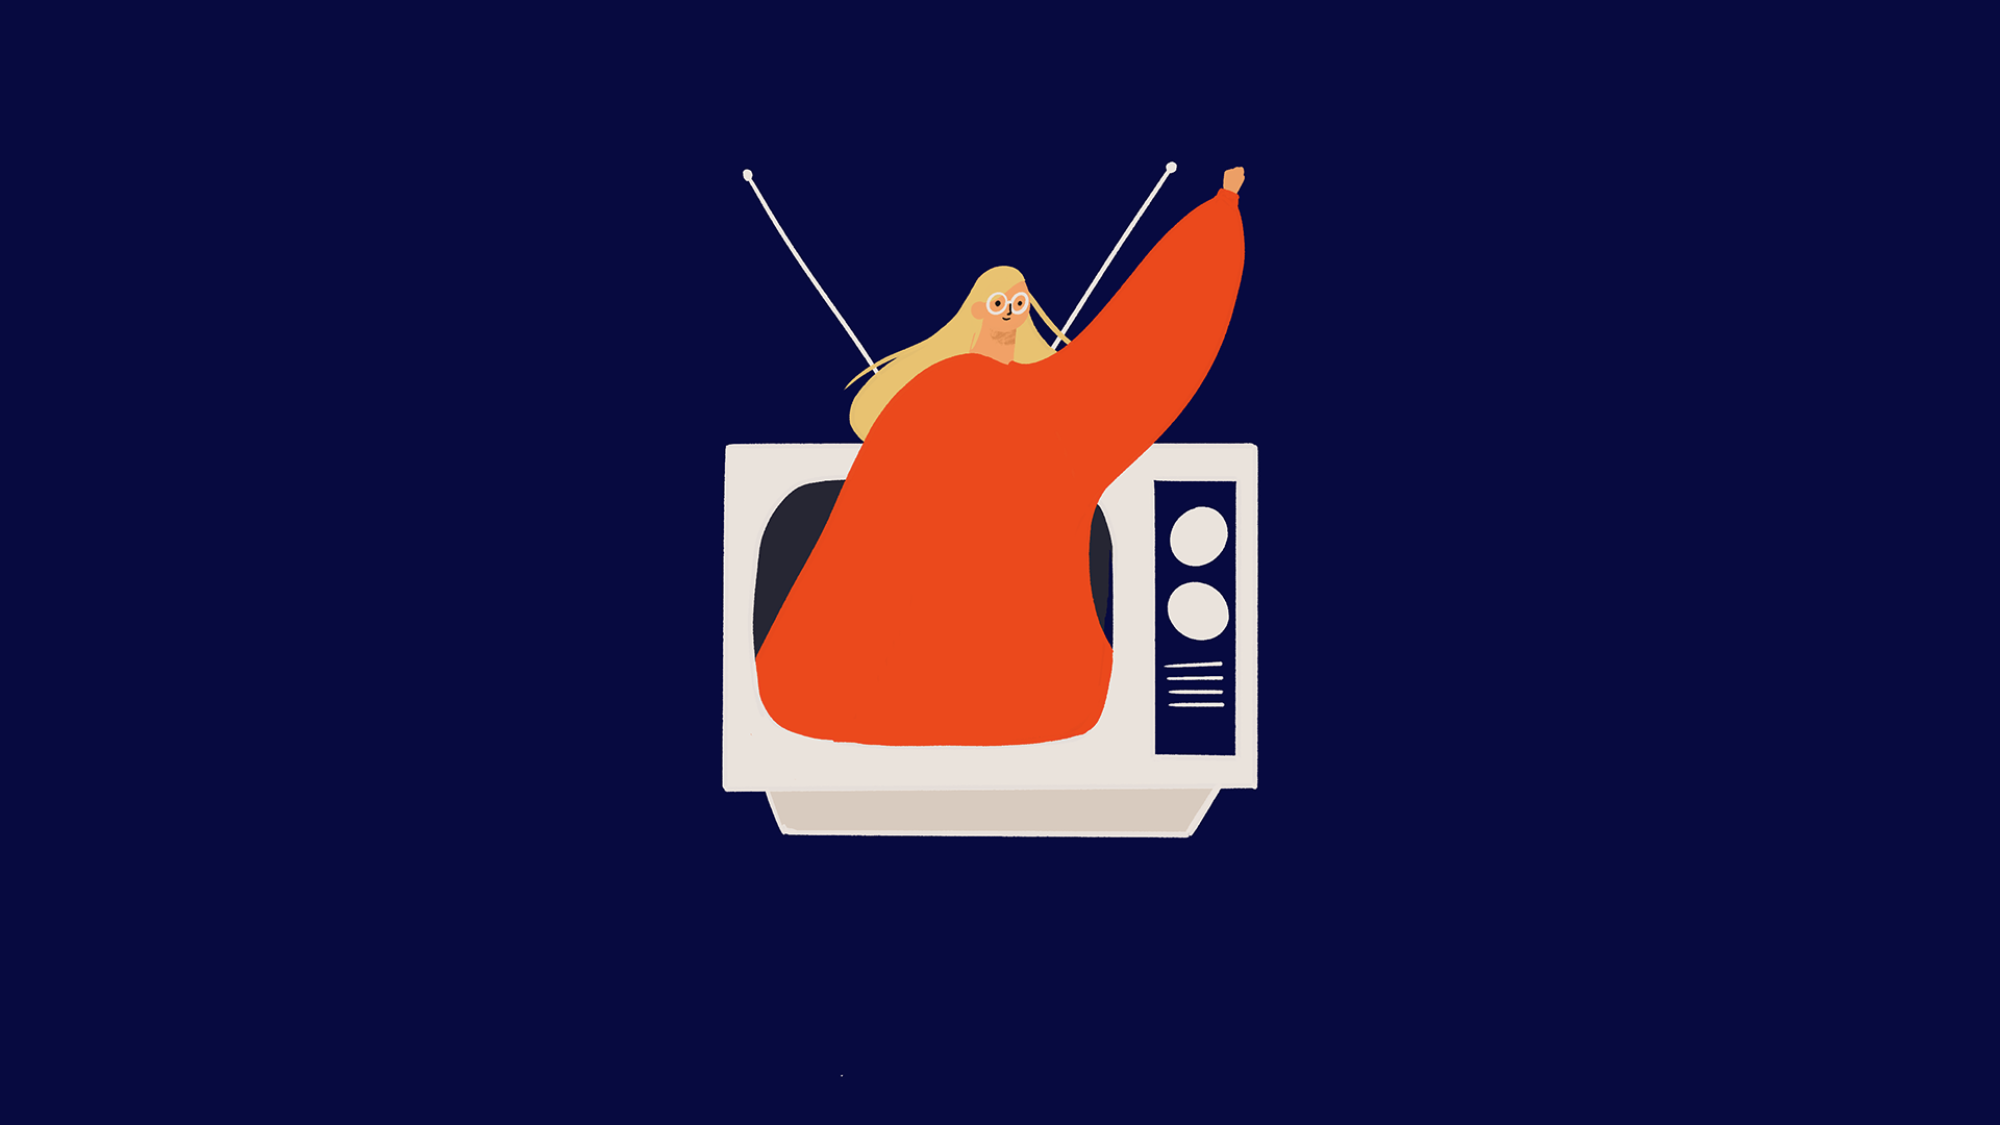 Illustration of woman waving from a TV fundraising ad